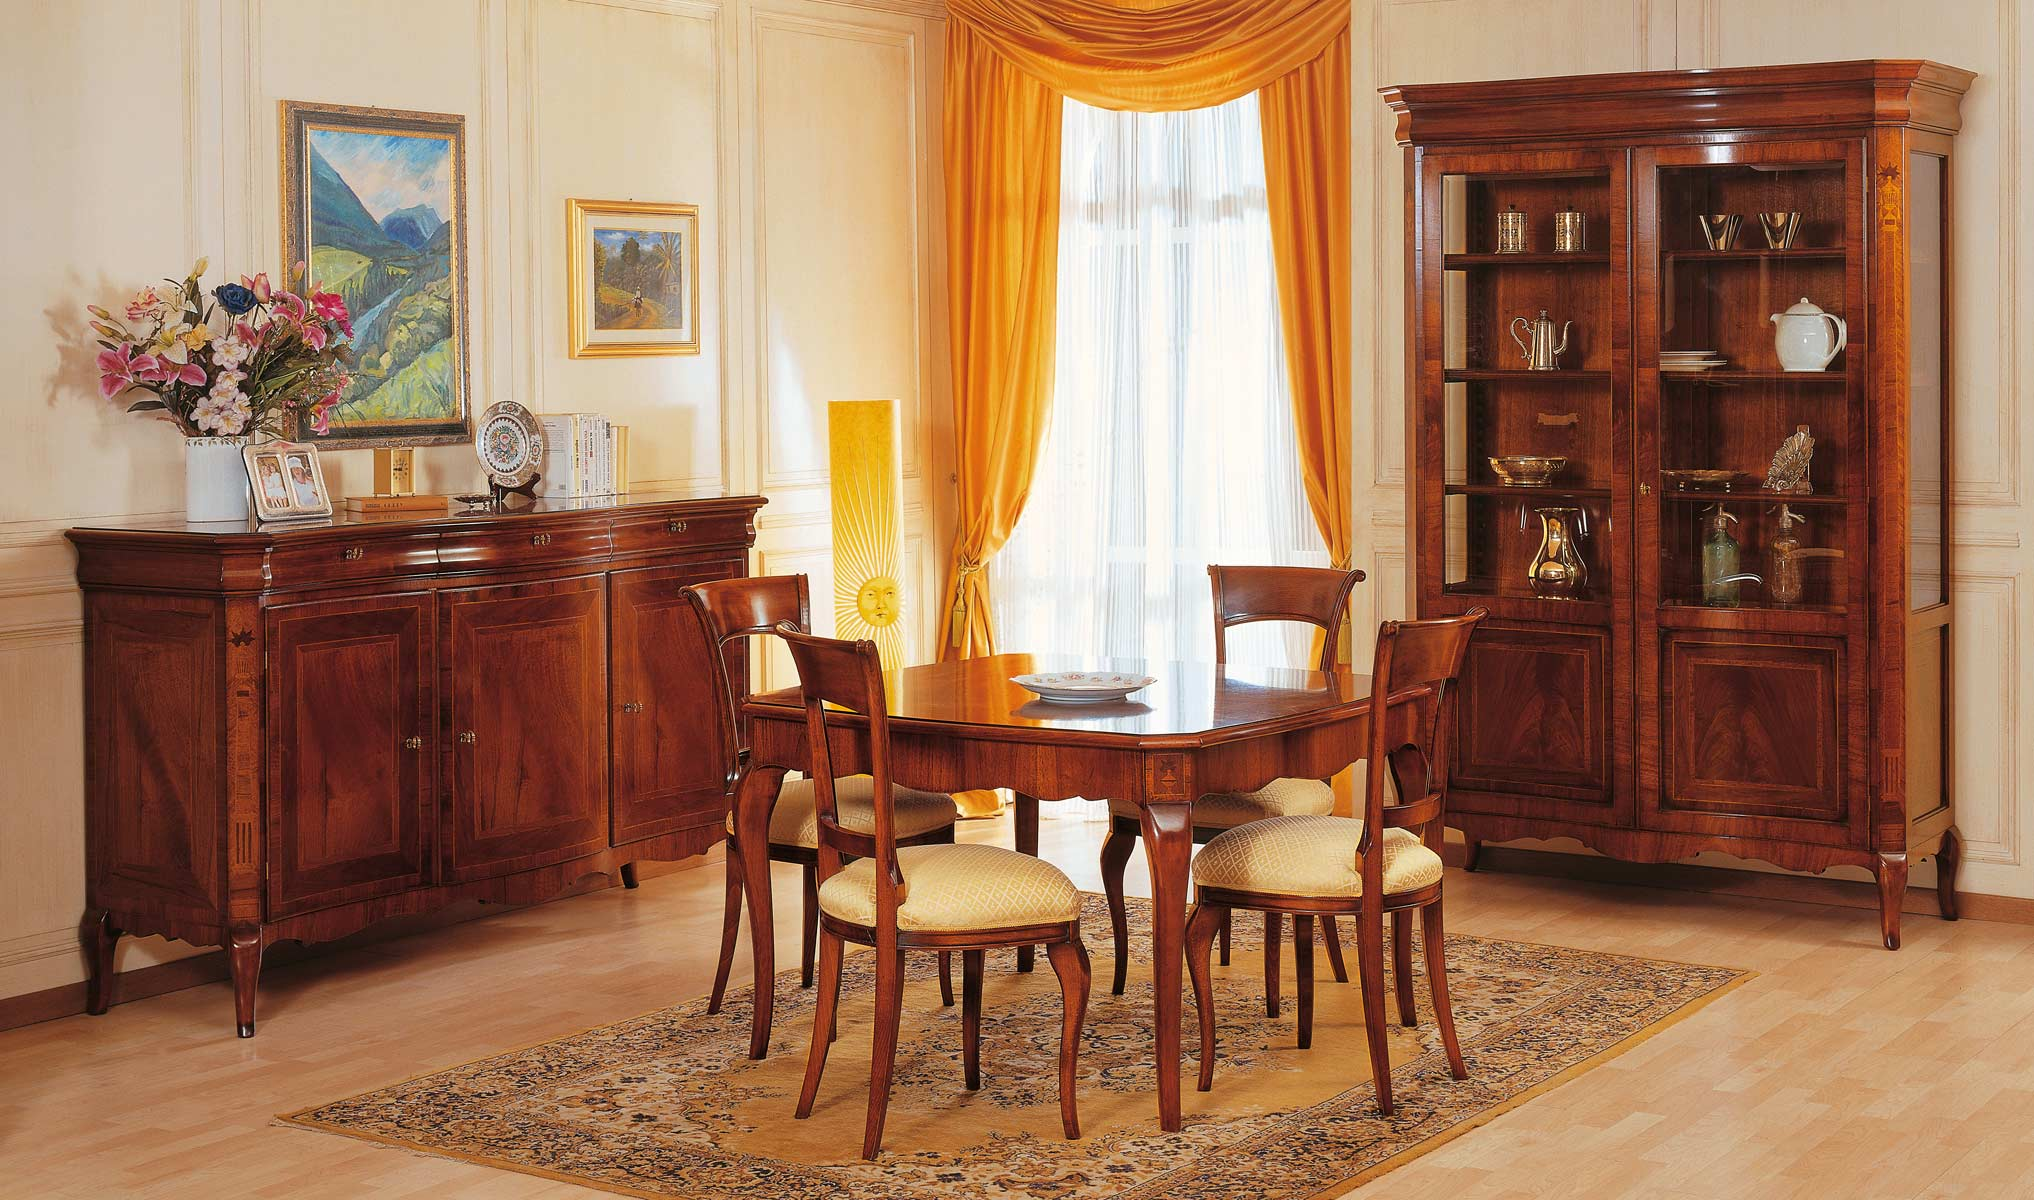 French 19th century dining room | Vimercati Classic Furniture